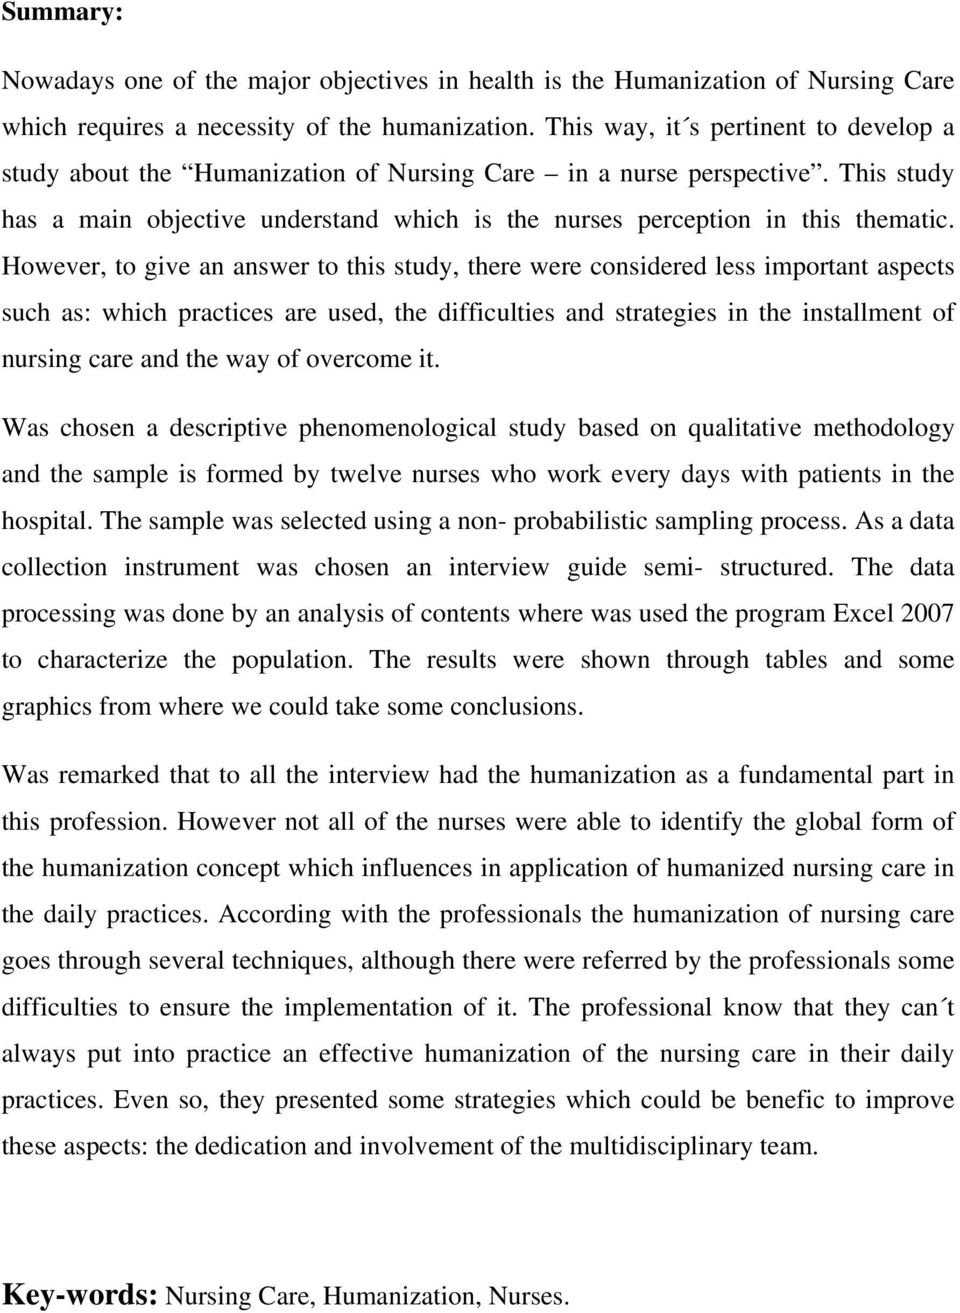 However, to give an answer to this study, there were considered less important aspects such as: which practices are used, the difficulties and strategies in the installment of nursing care and the